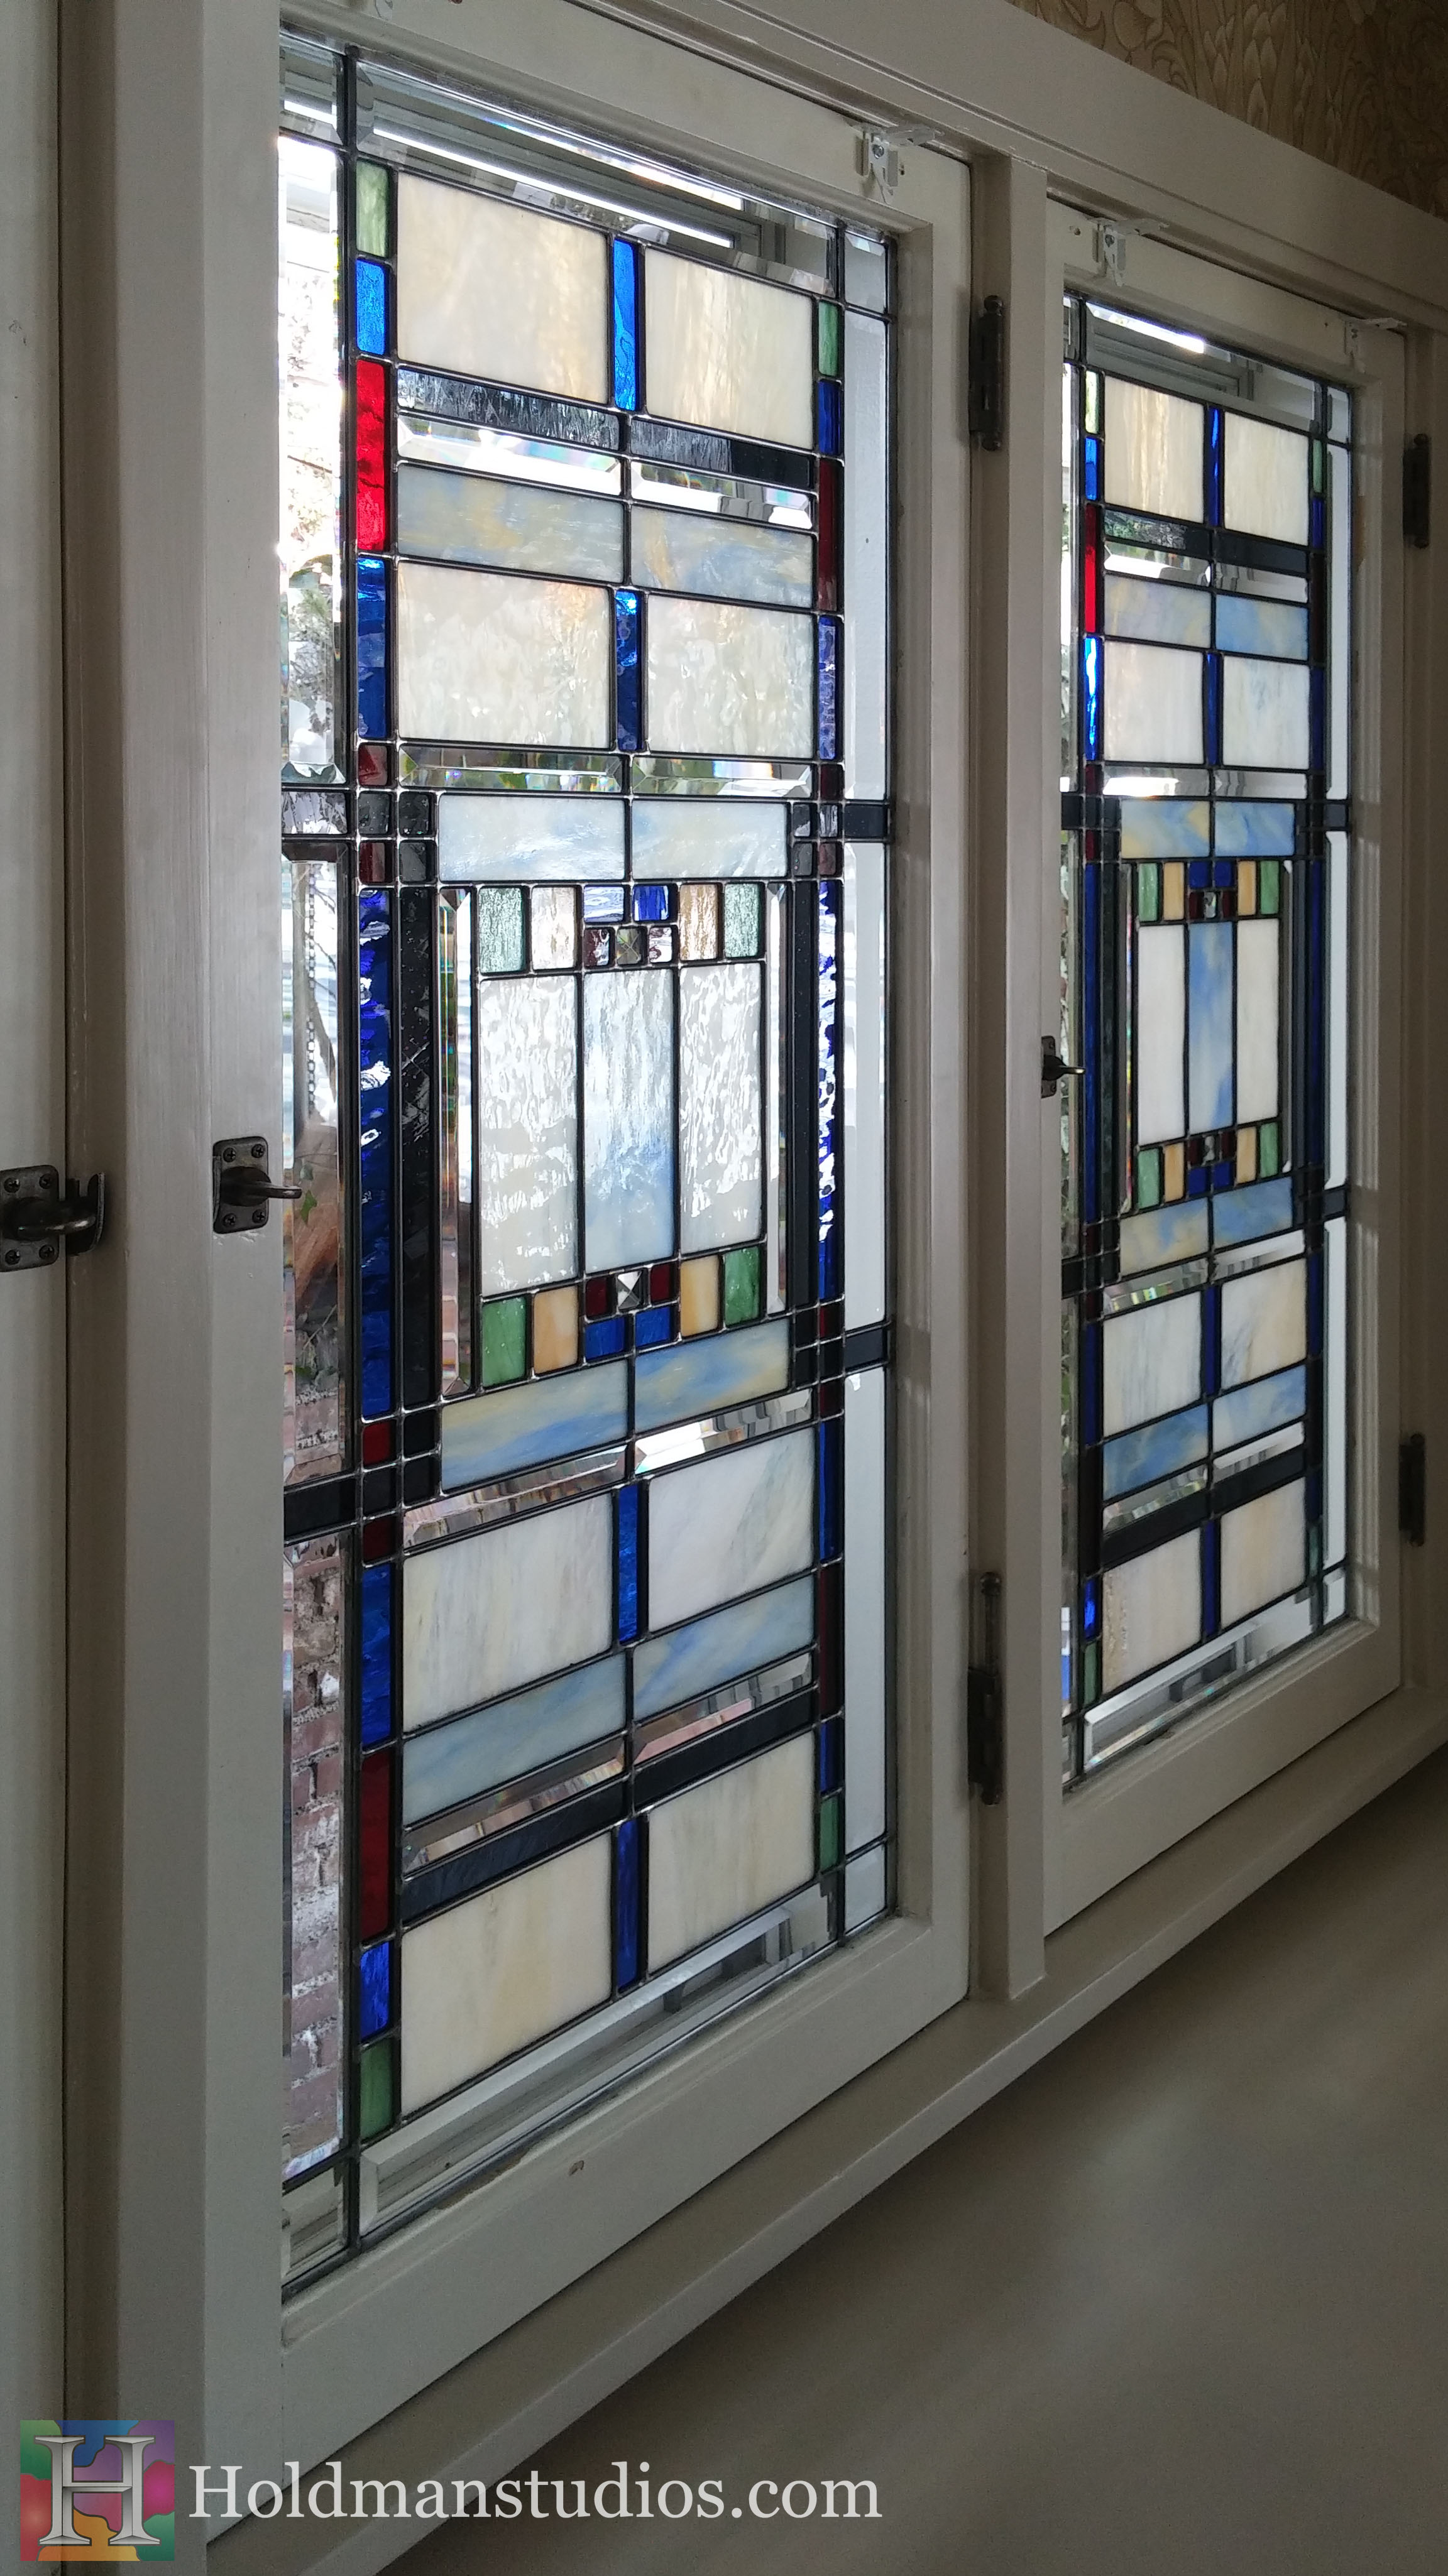 Holdman-Studios-Stained-Glass-Cuboard-Window-Artdeco-Squares-Rectangles-sideview.jpg